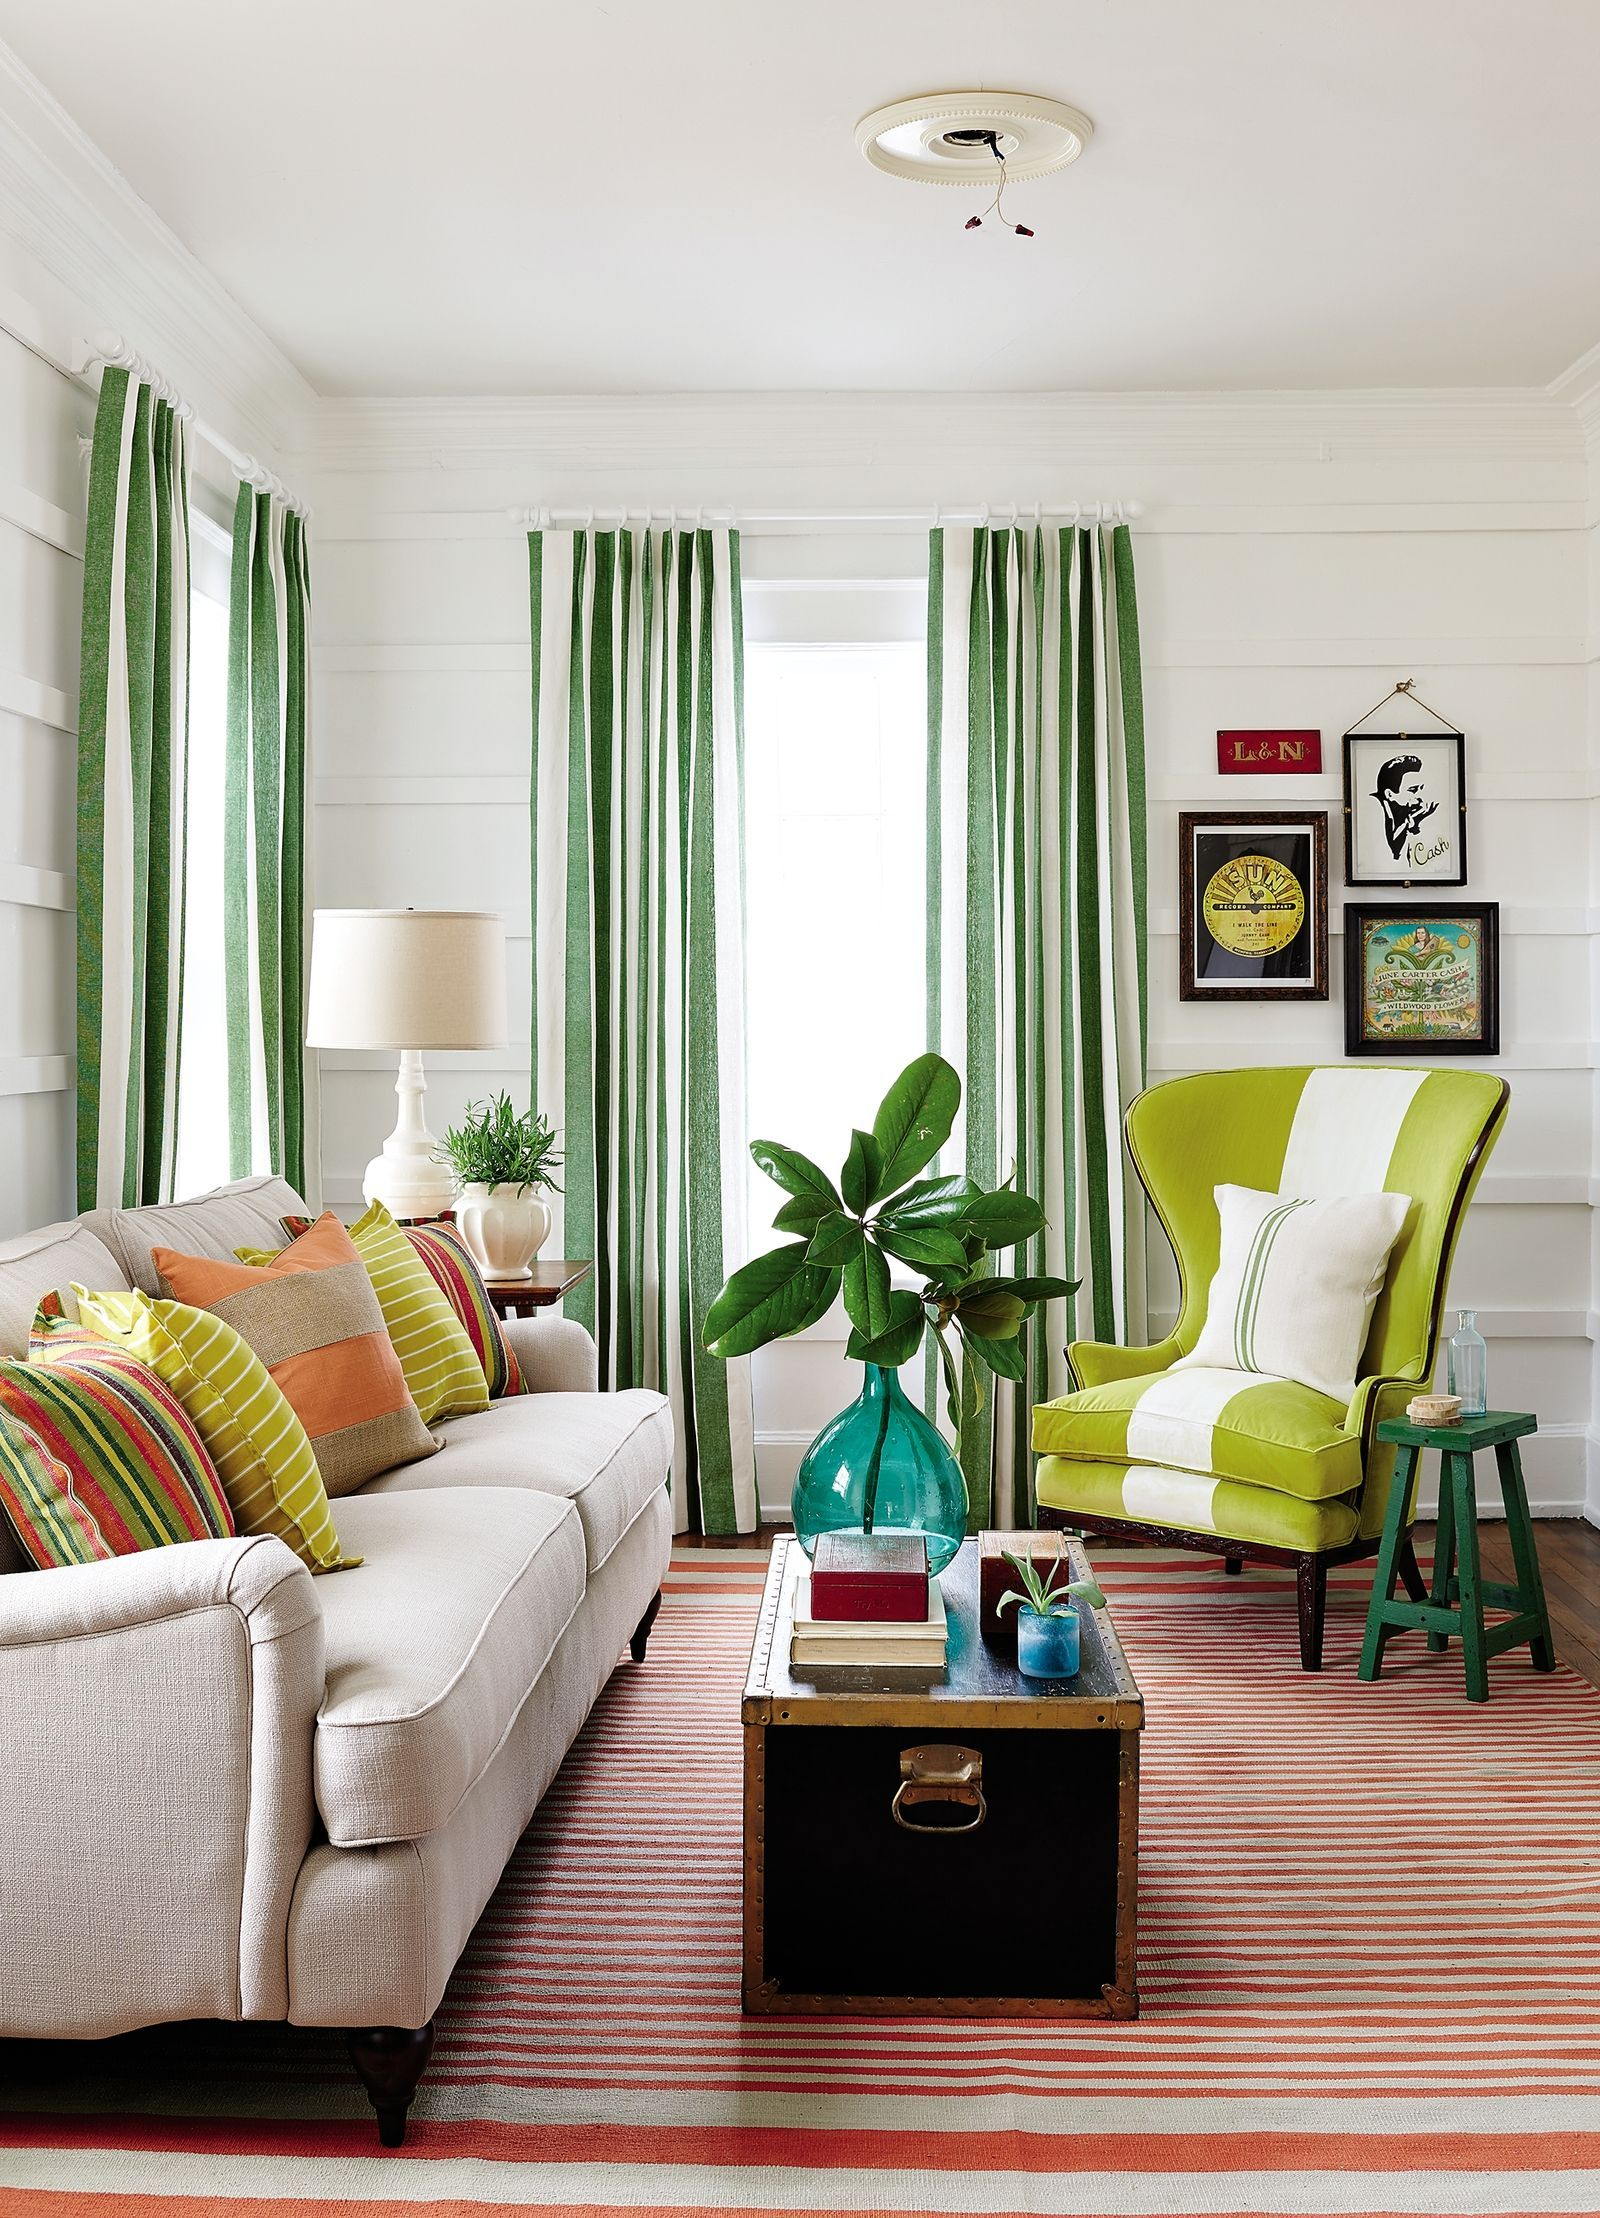 Hereus the secret to decorating with vintage items living rooms